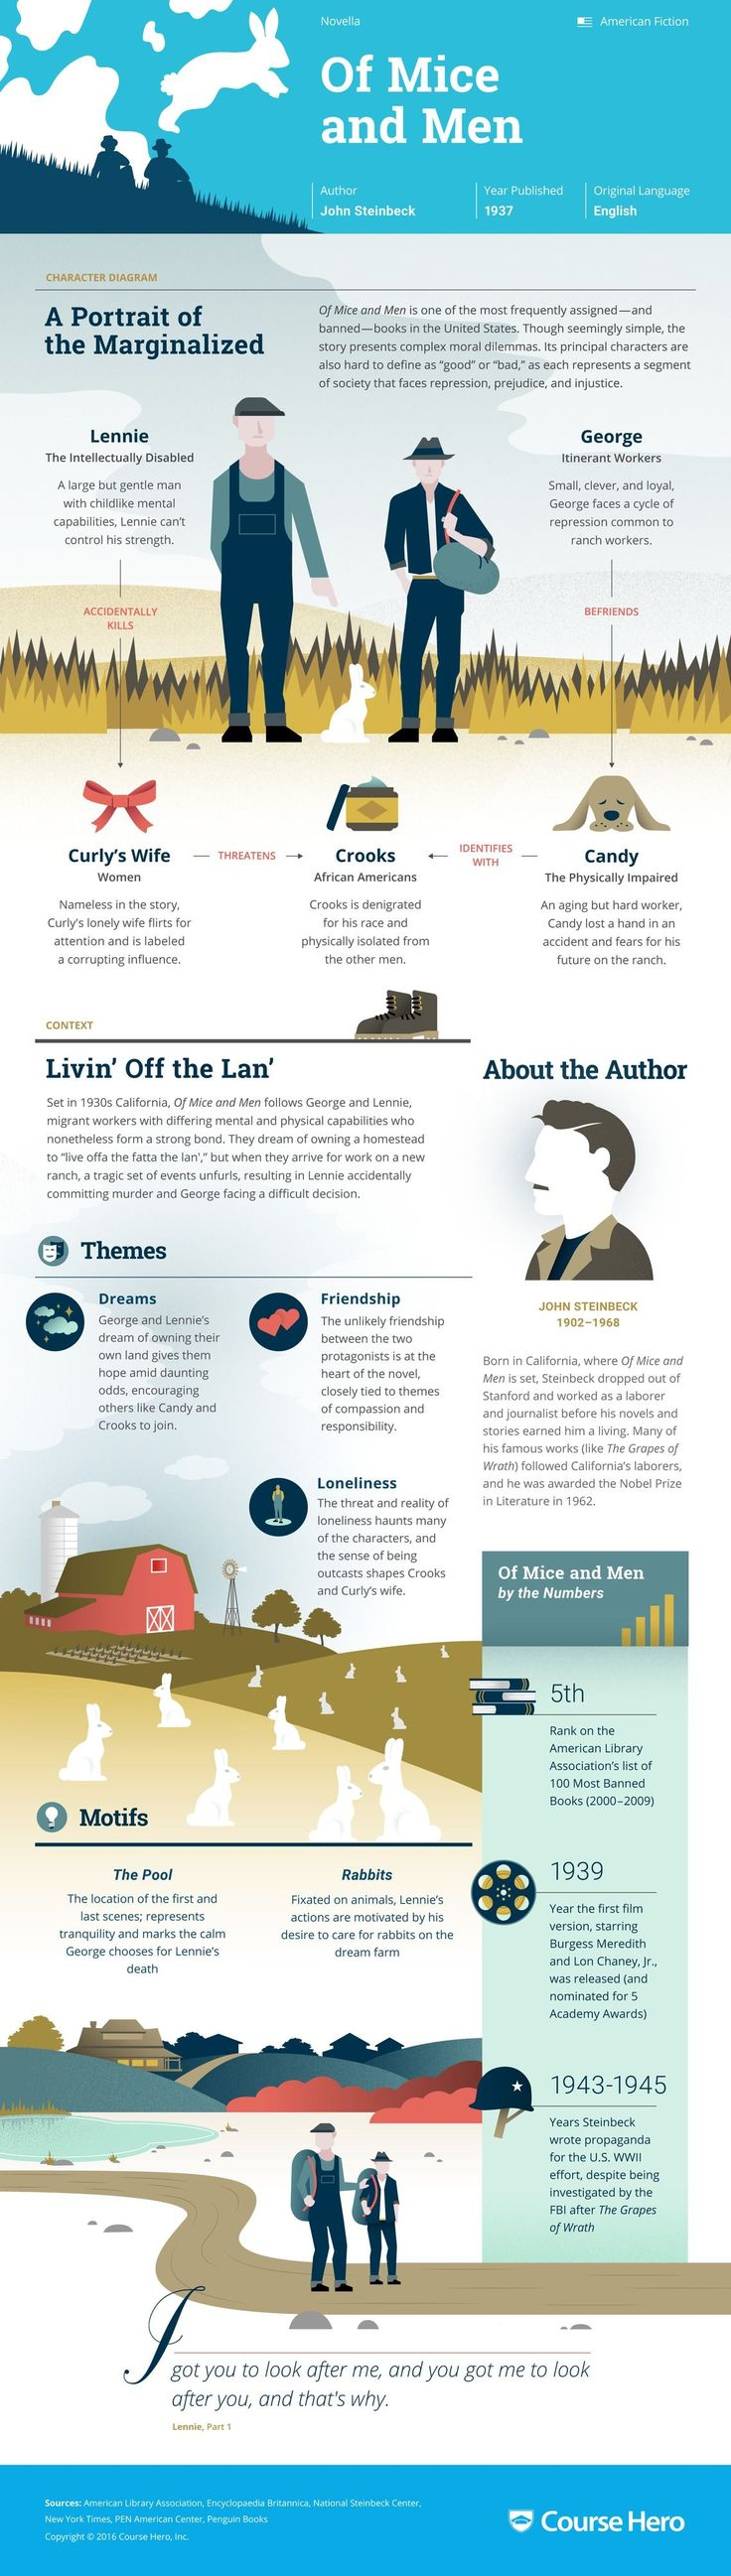 Of Mice and Men Infographic | Course Hero